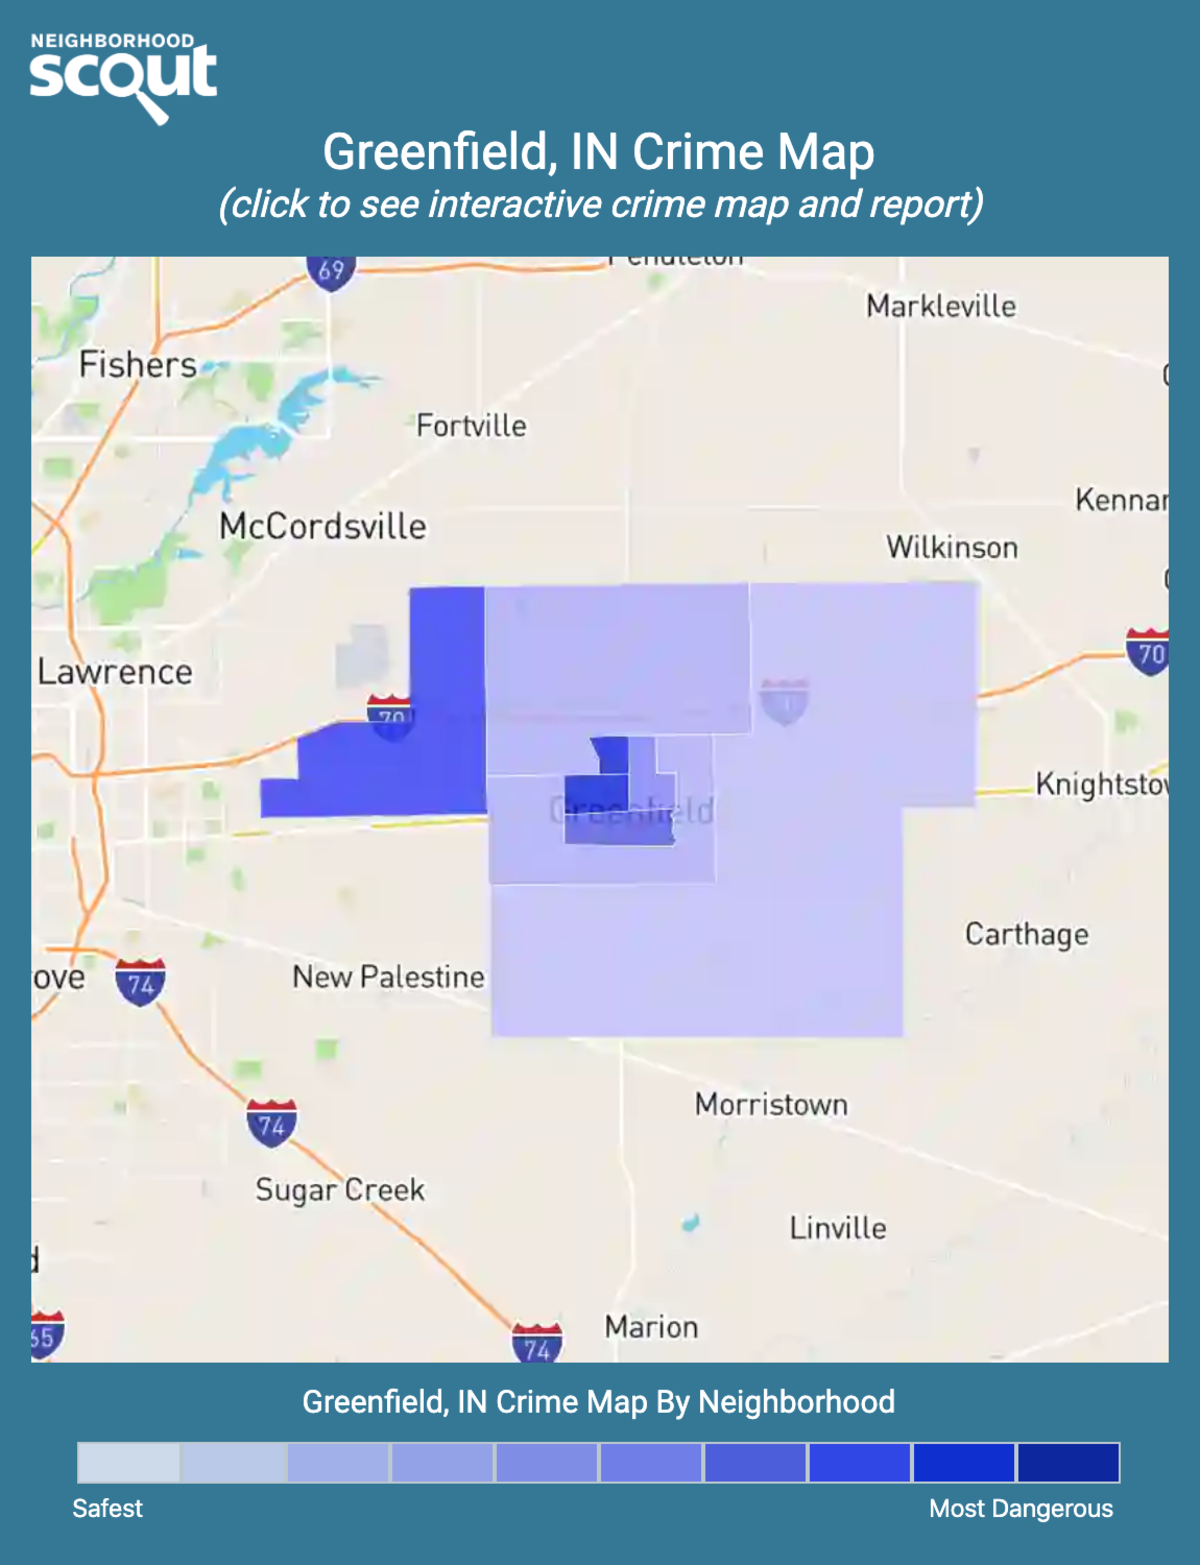 Greenfield, Indiana crime map